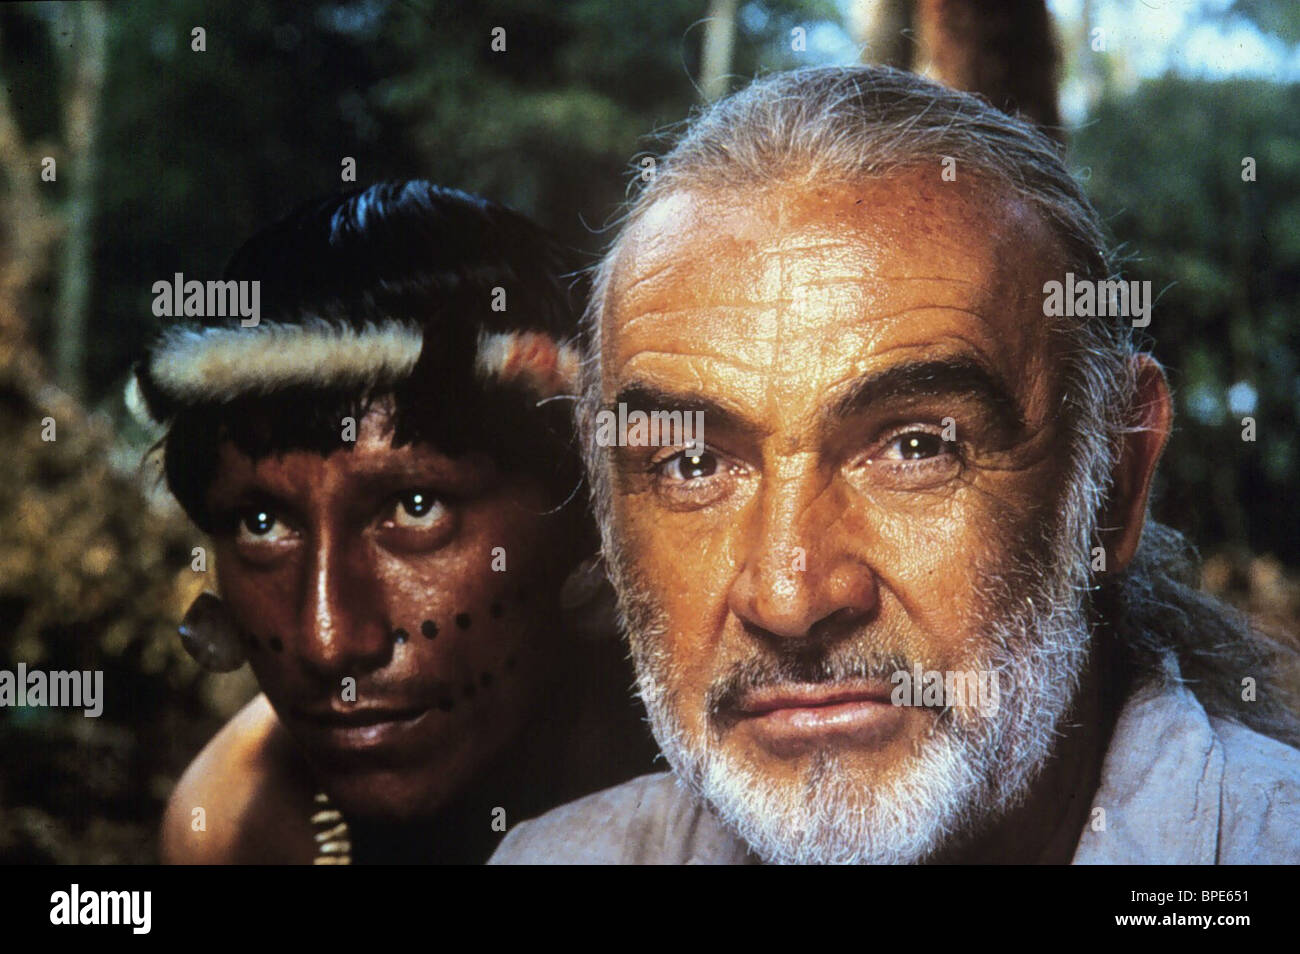 SEAN CONNERY MEDICINE MAN (1992) - Stock Image